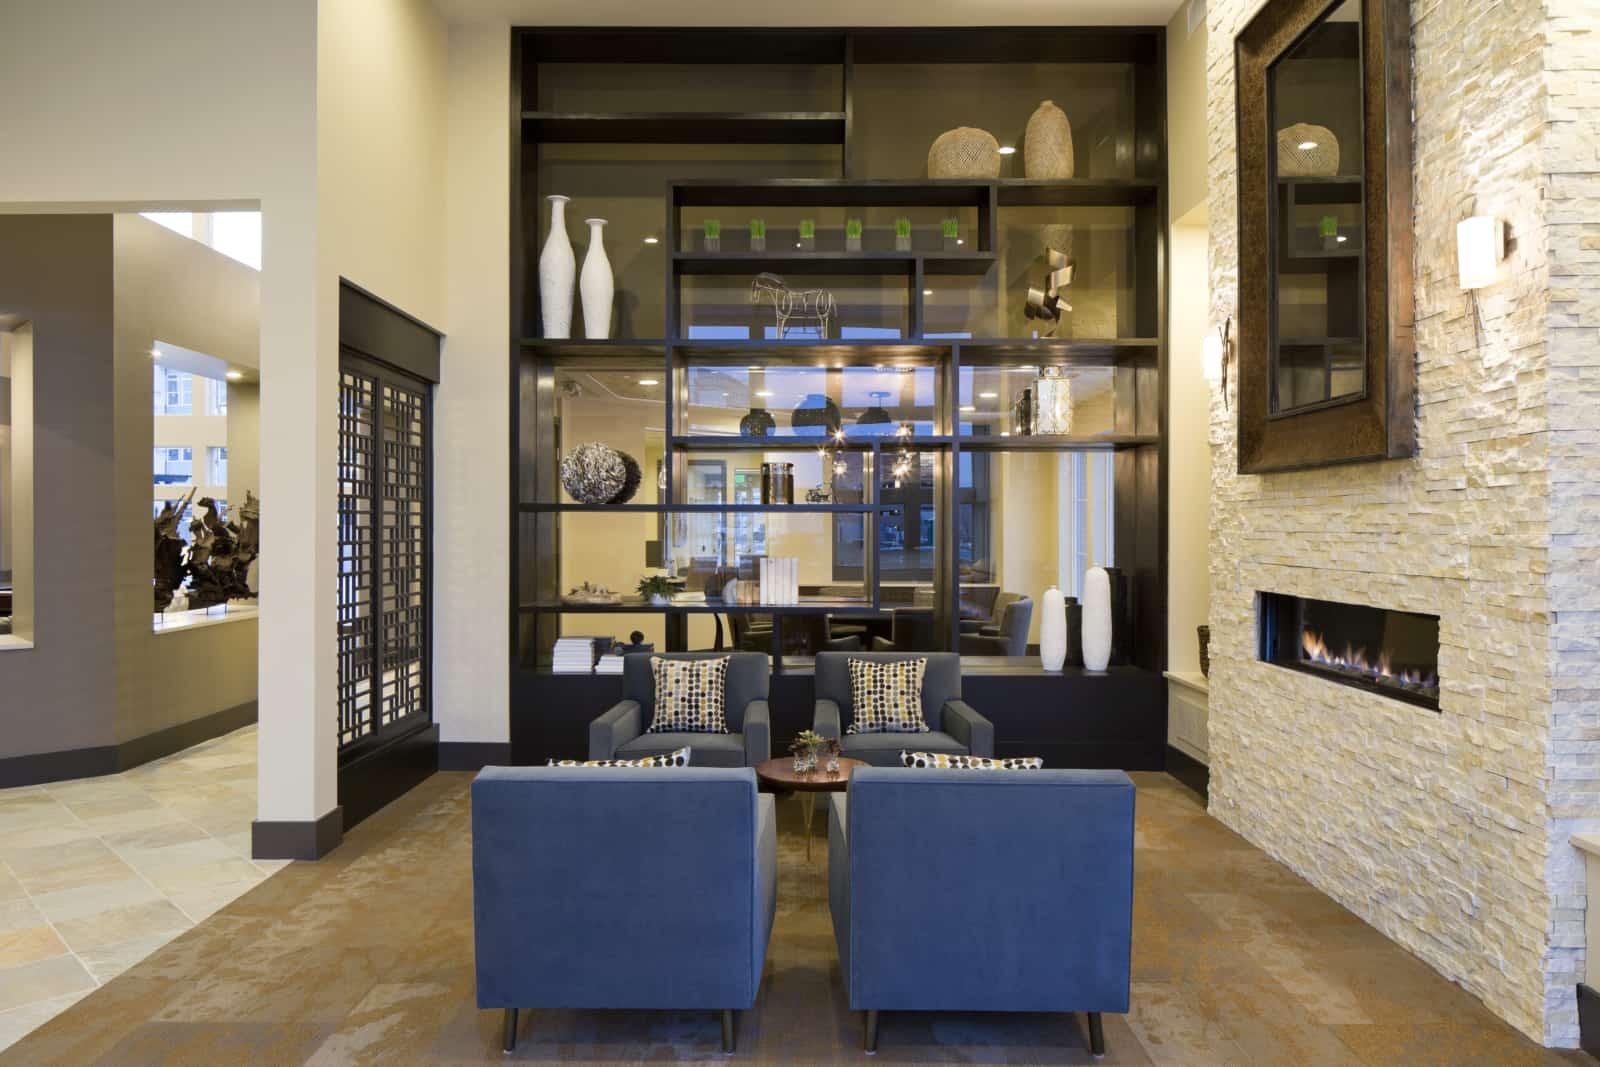 Interior of apartment lobby with modern fireplace and sitting area